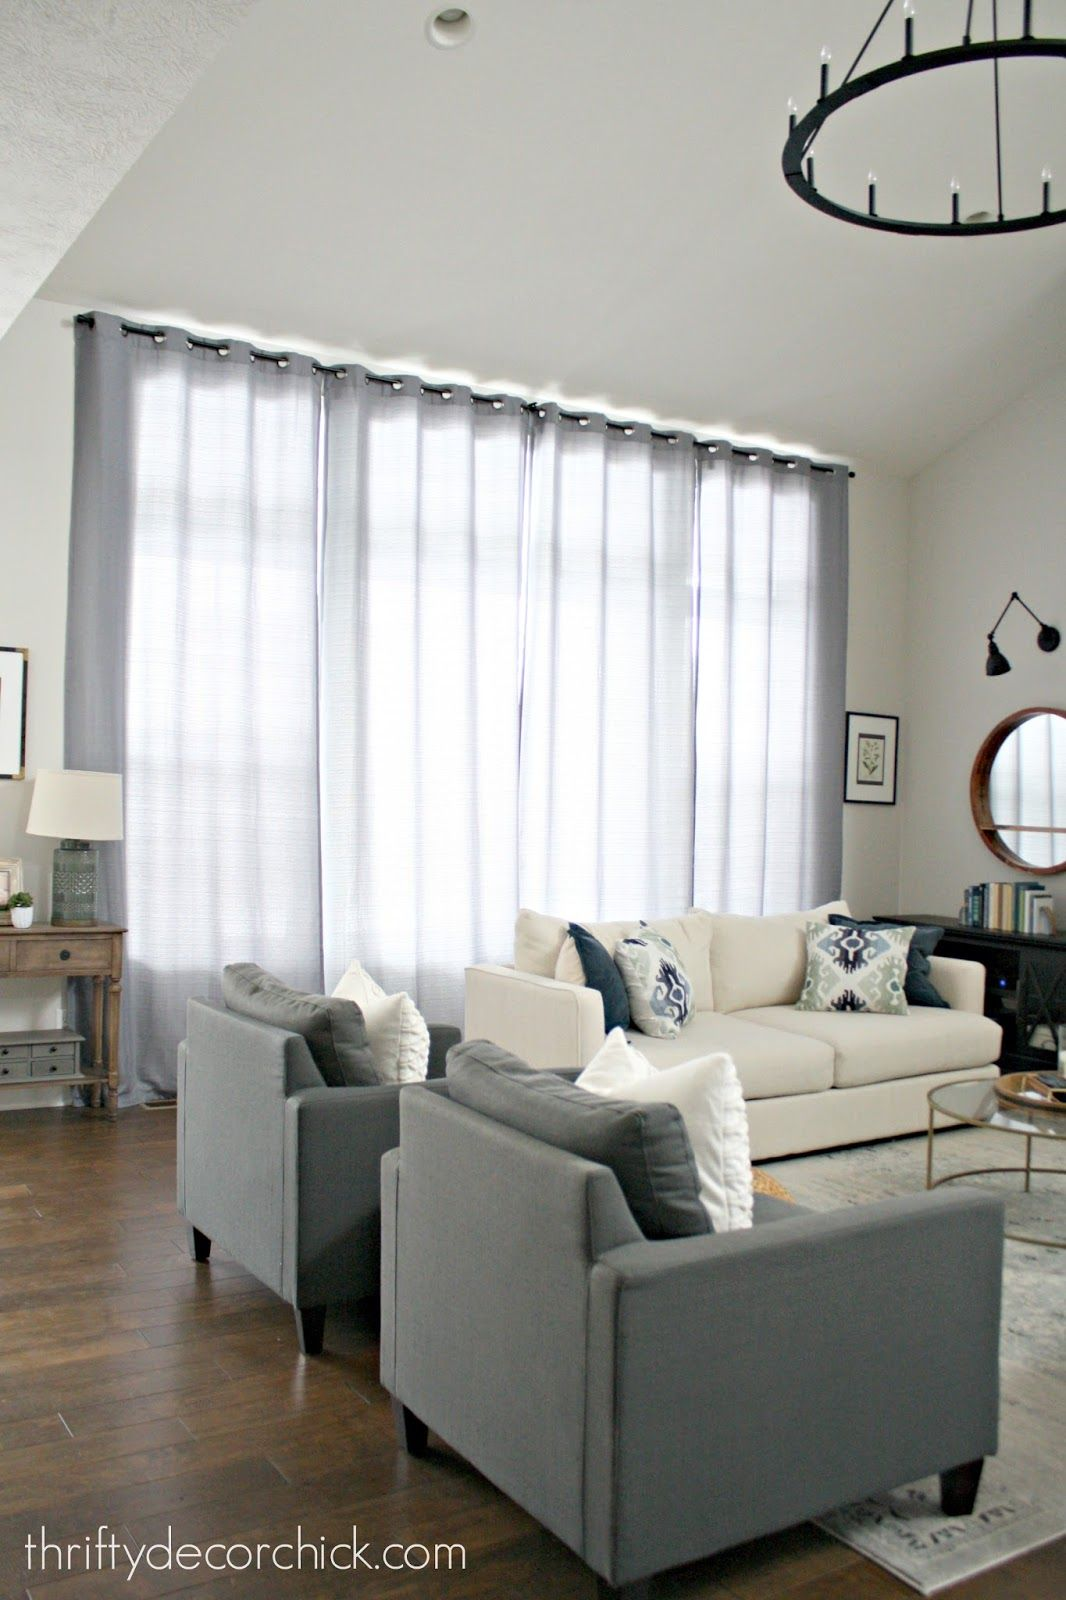 Hardware And Drapes For Big Windows That Don T Break The Bank Big Windows Living Room Long Curtains Living Room Picture Windows Living Room